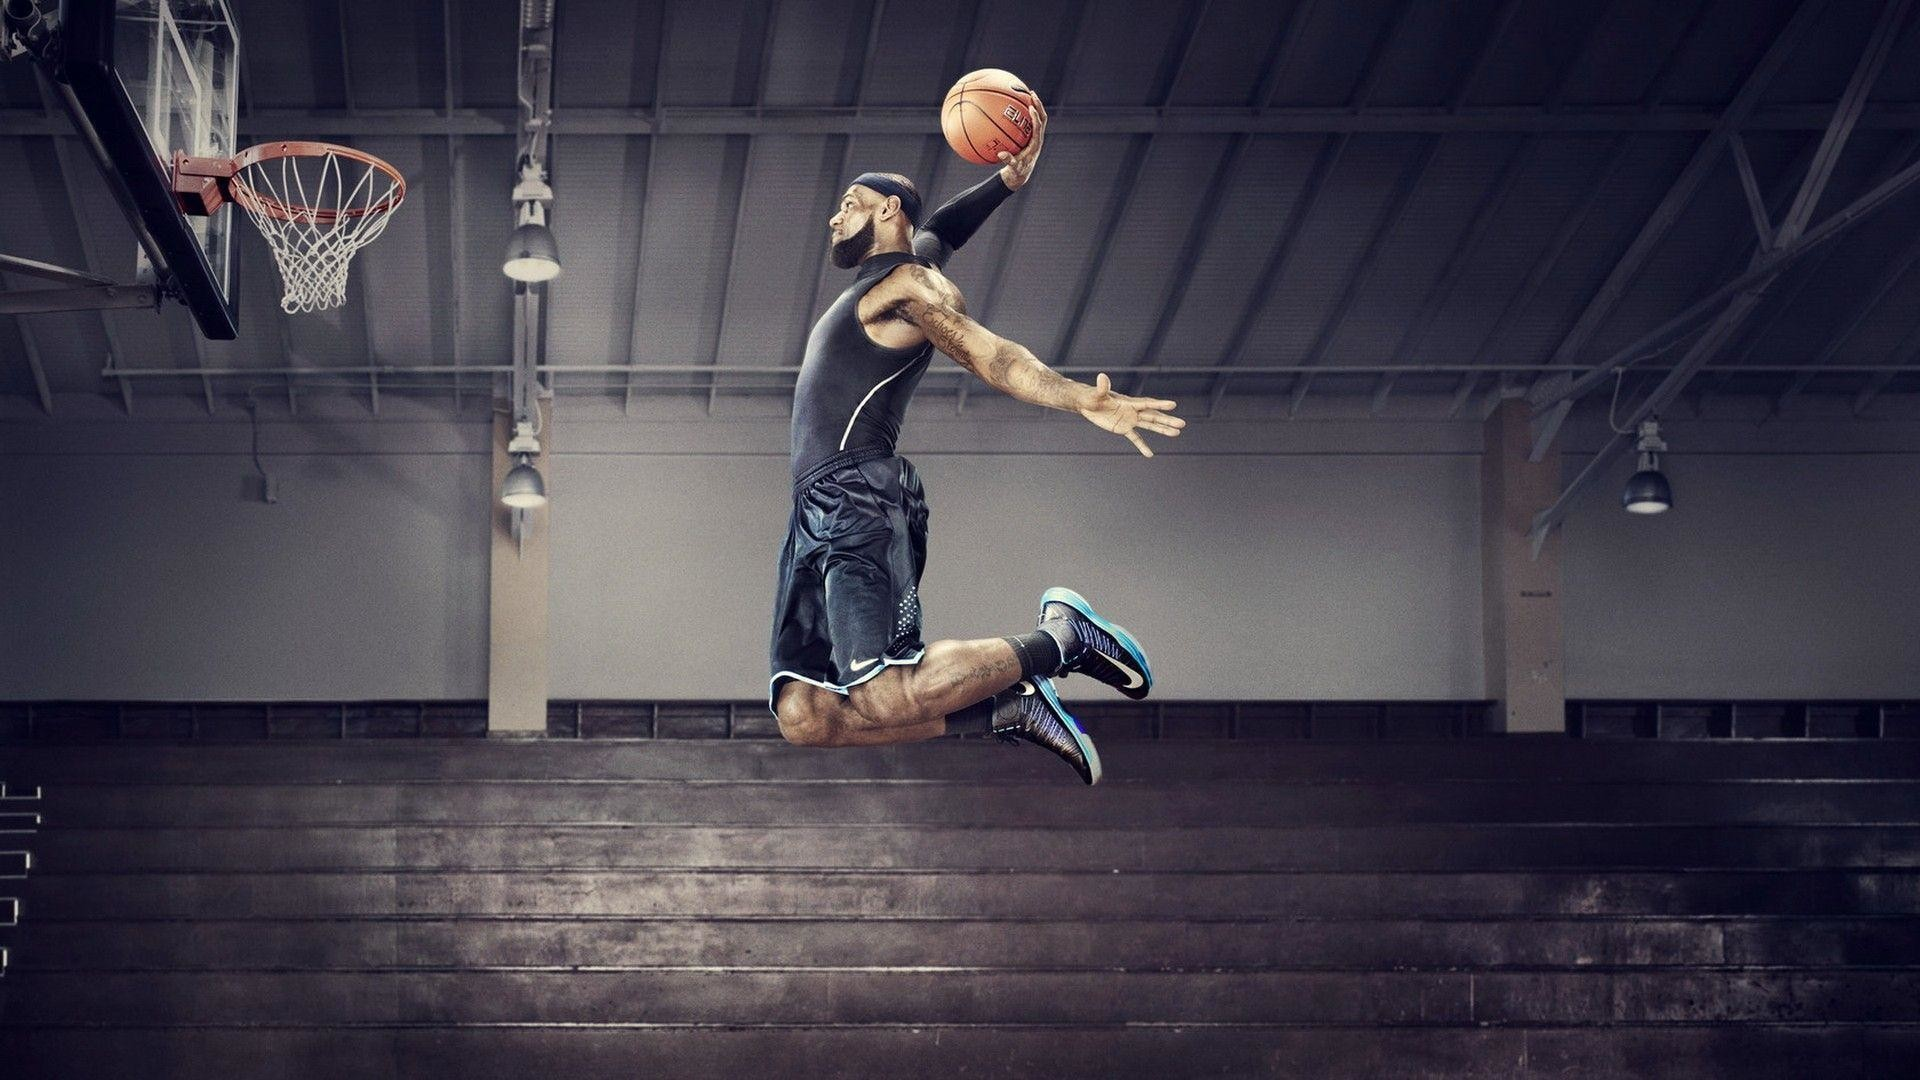 1920x1080 Lebron James Dunk 2014 Wallpaper Wide or HD | Male Celebrities .